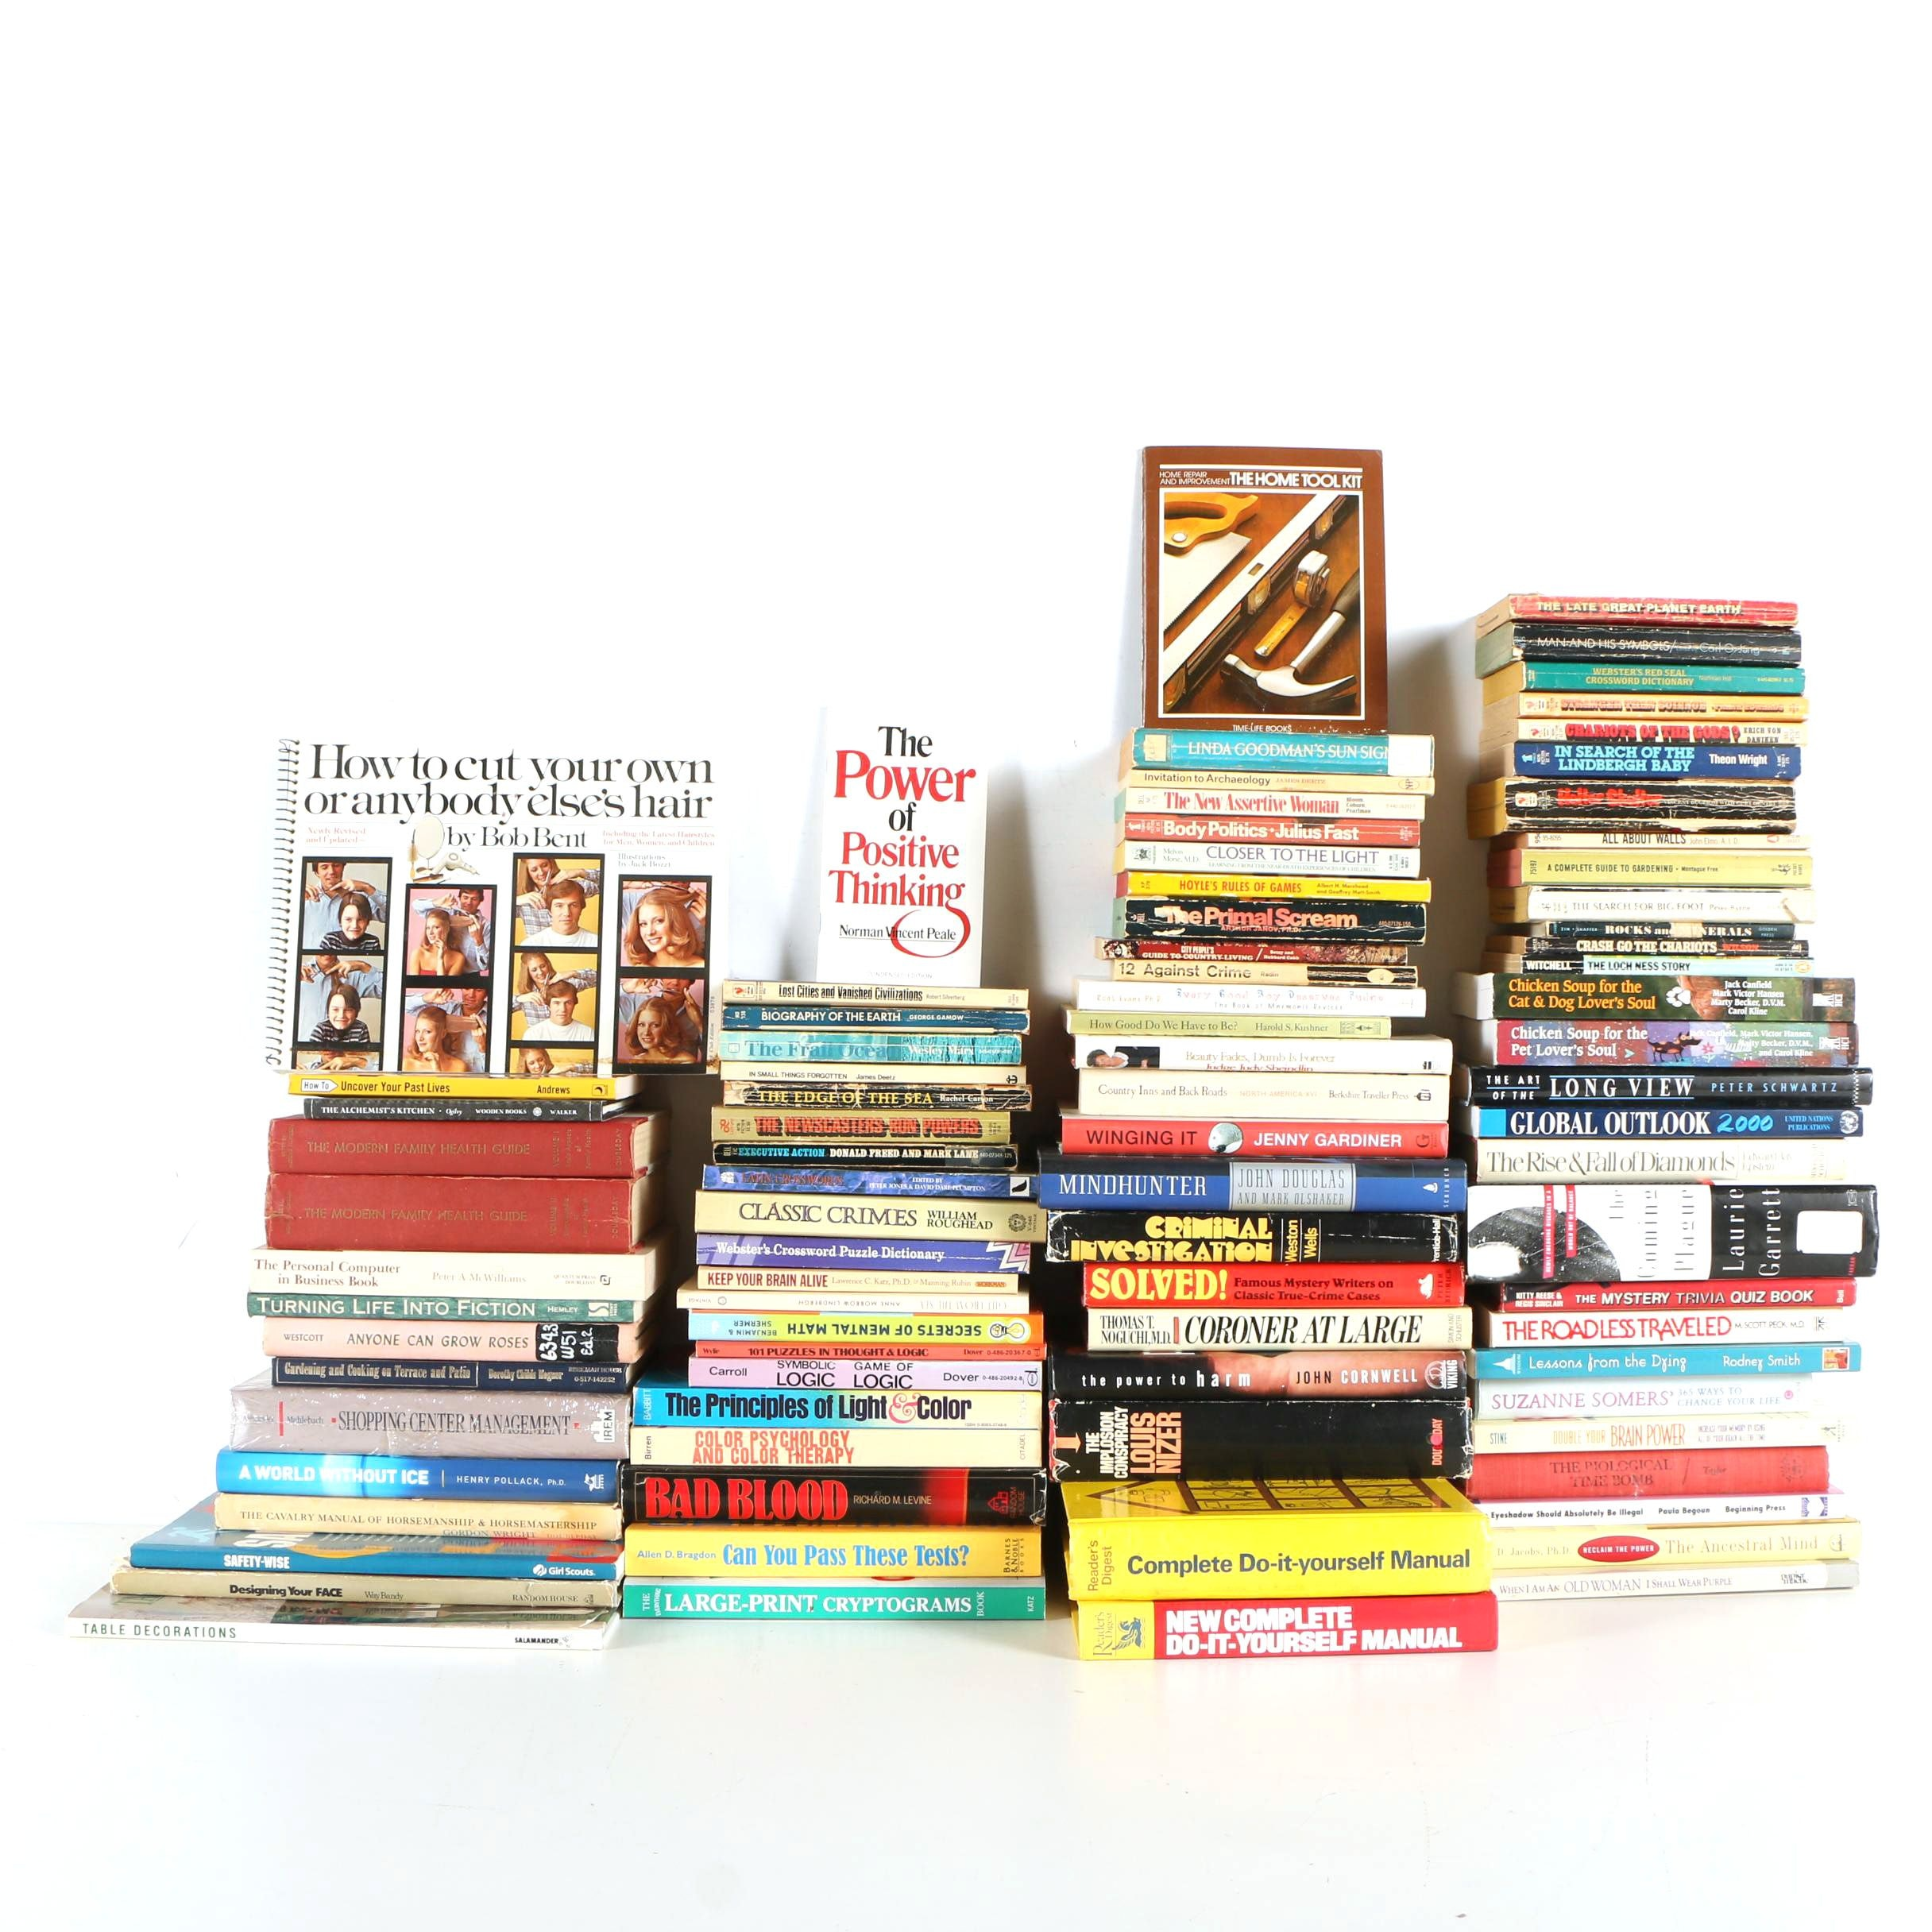 Assorted Books Including Self-Help, Home Improvement, Health, and More